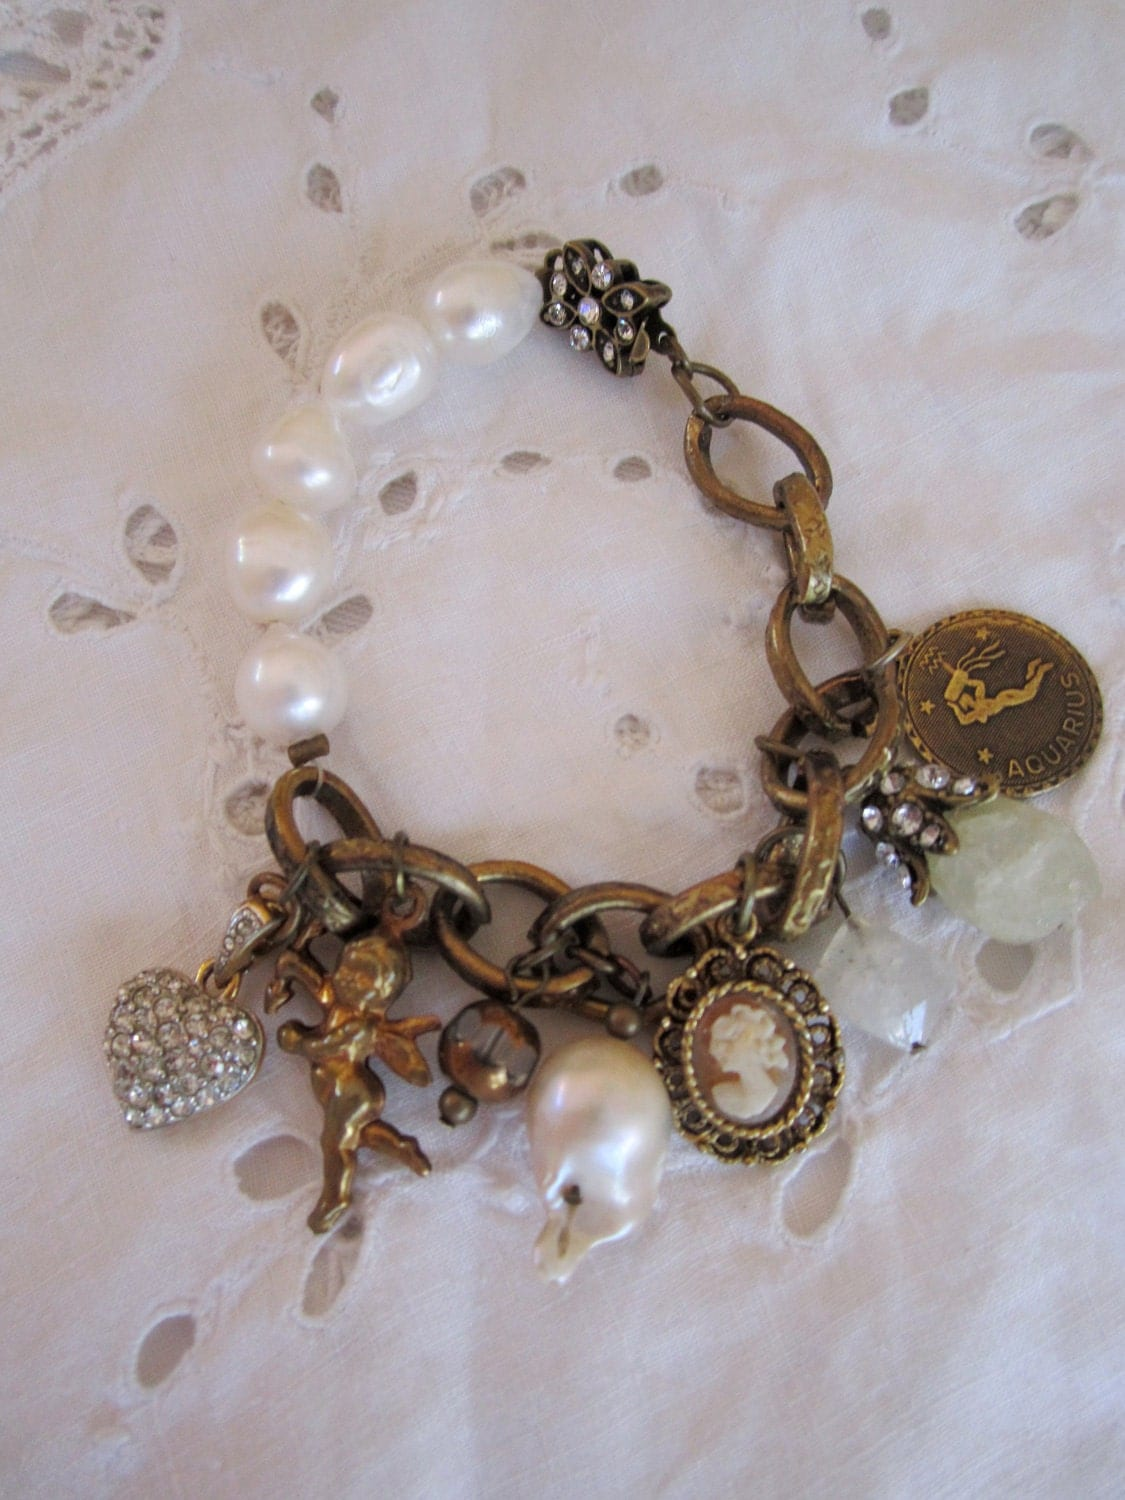 Blowjob Vintage heart bracelet head for